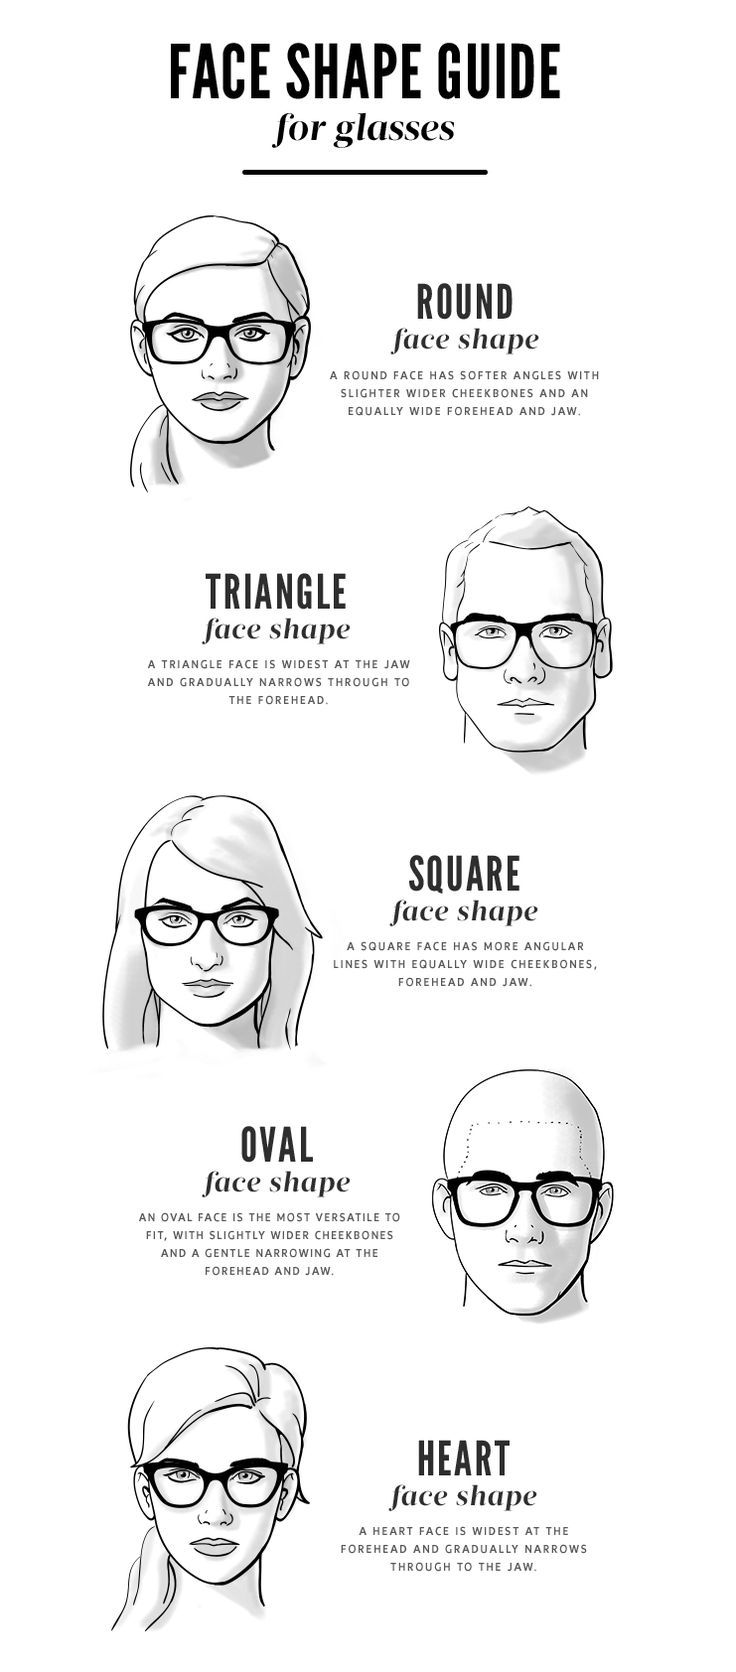 Glasses Frames Face Types : Face Shape Guide for Glasses Oakley sunglasses, For ...